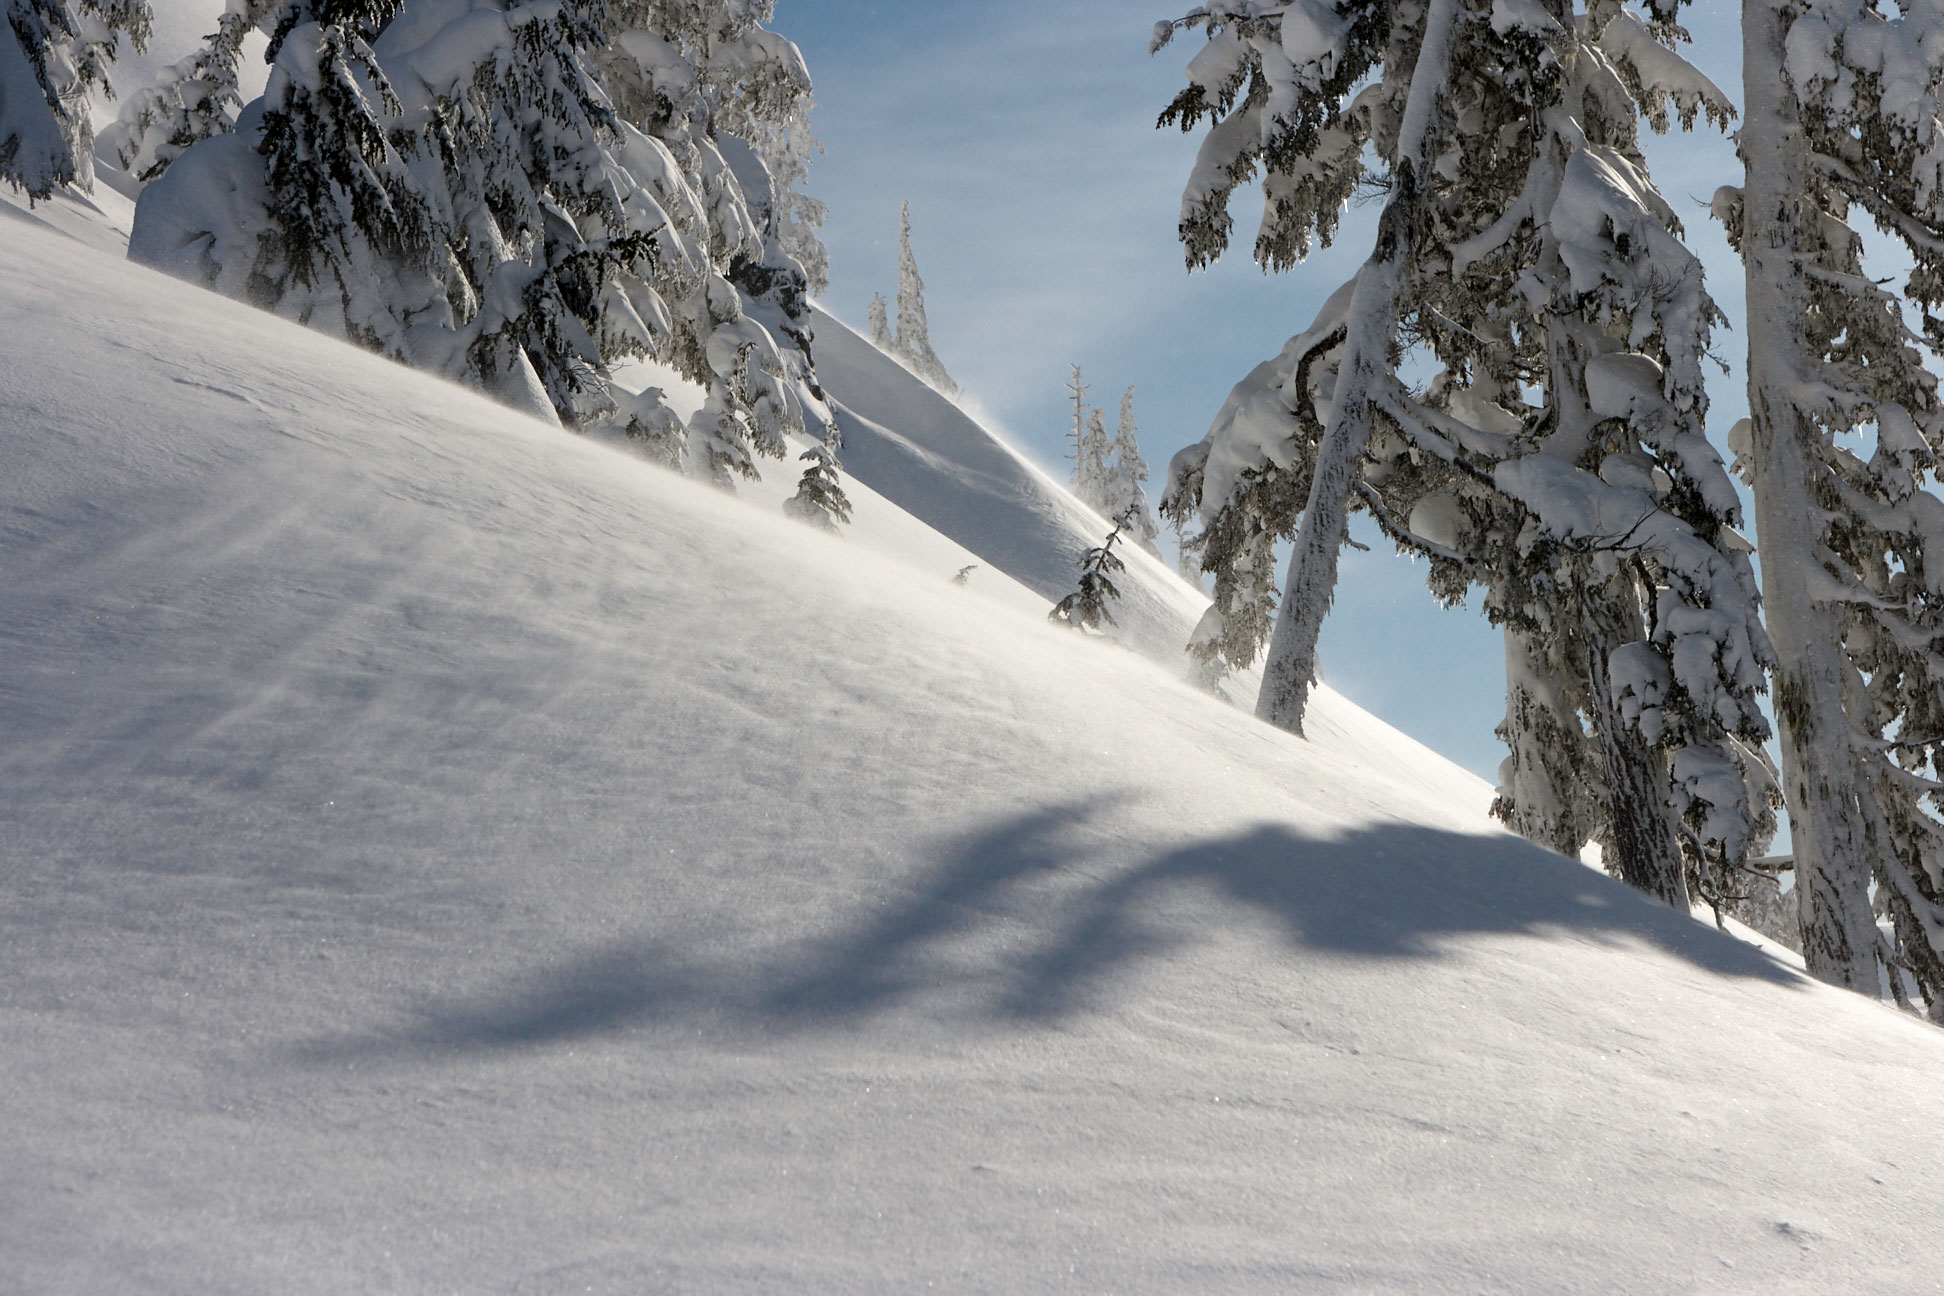 Cascade Backcountry Ski Patrol